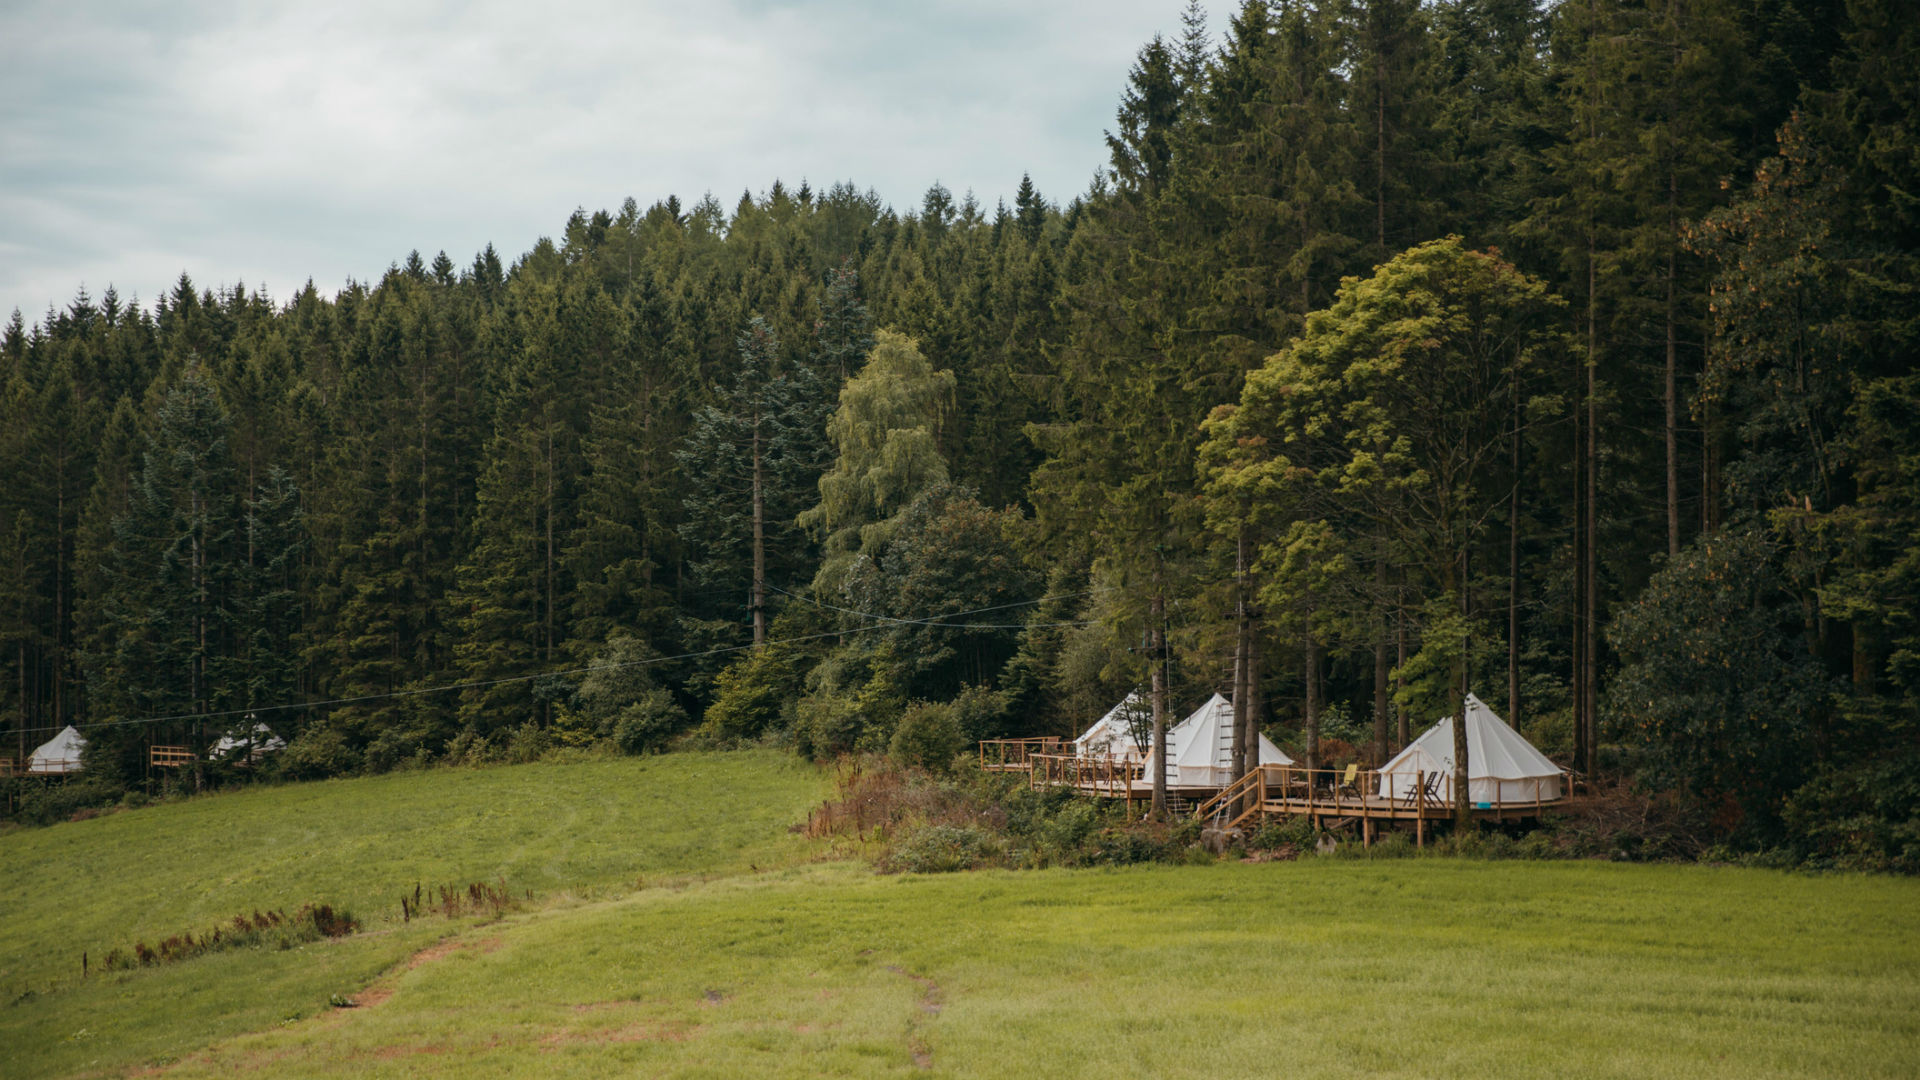 Are you considering development of holiday accommodation/ glamping in Snowdonia?